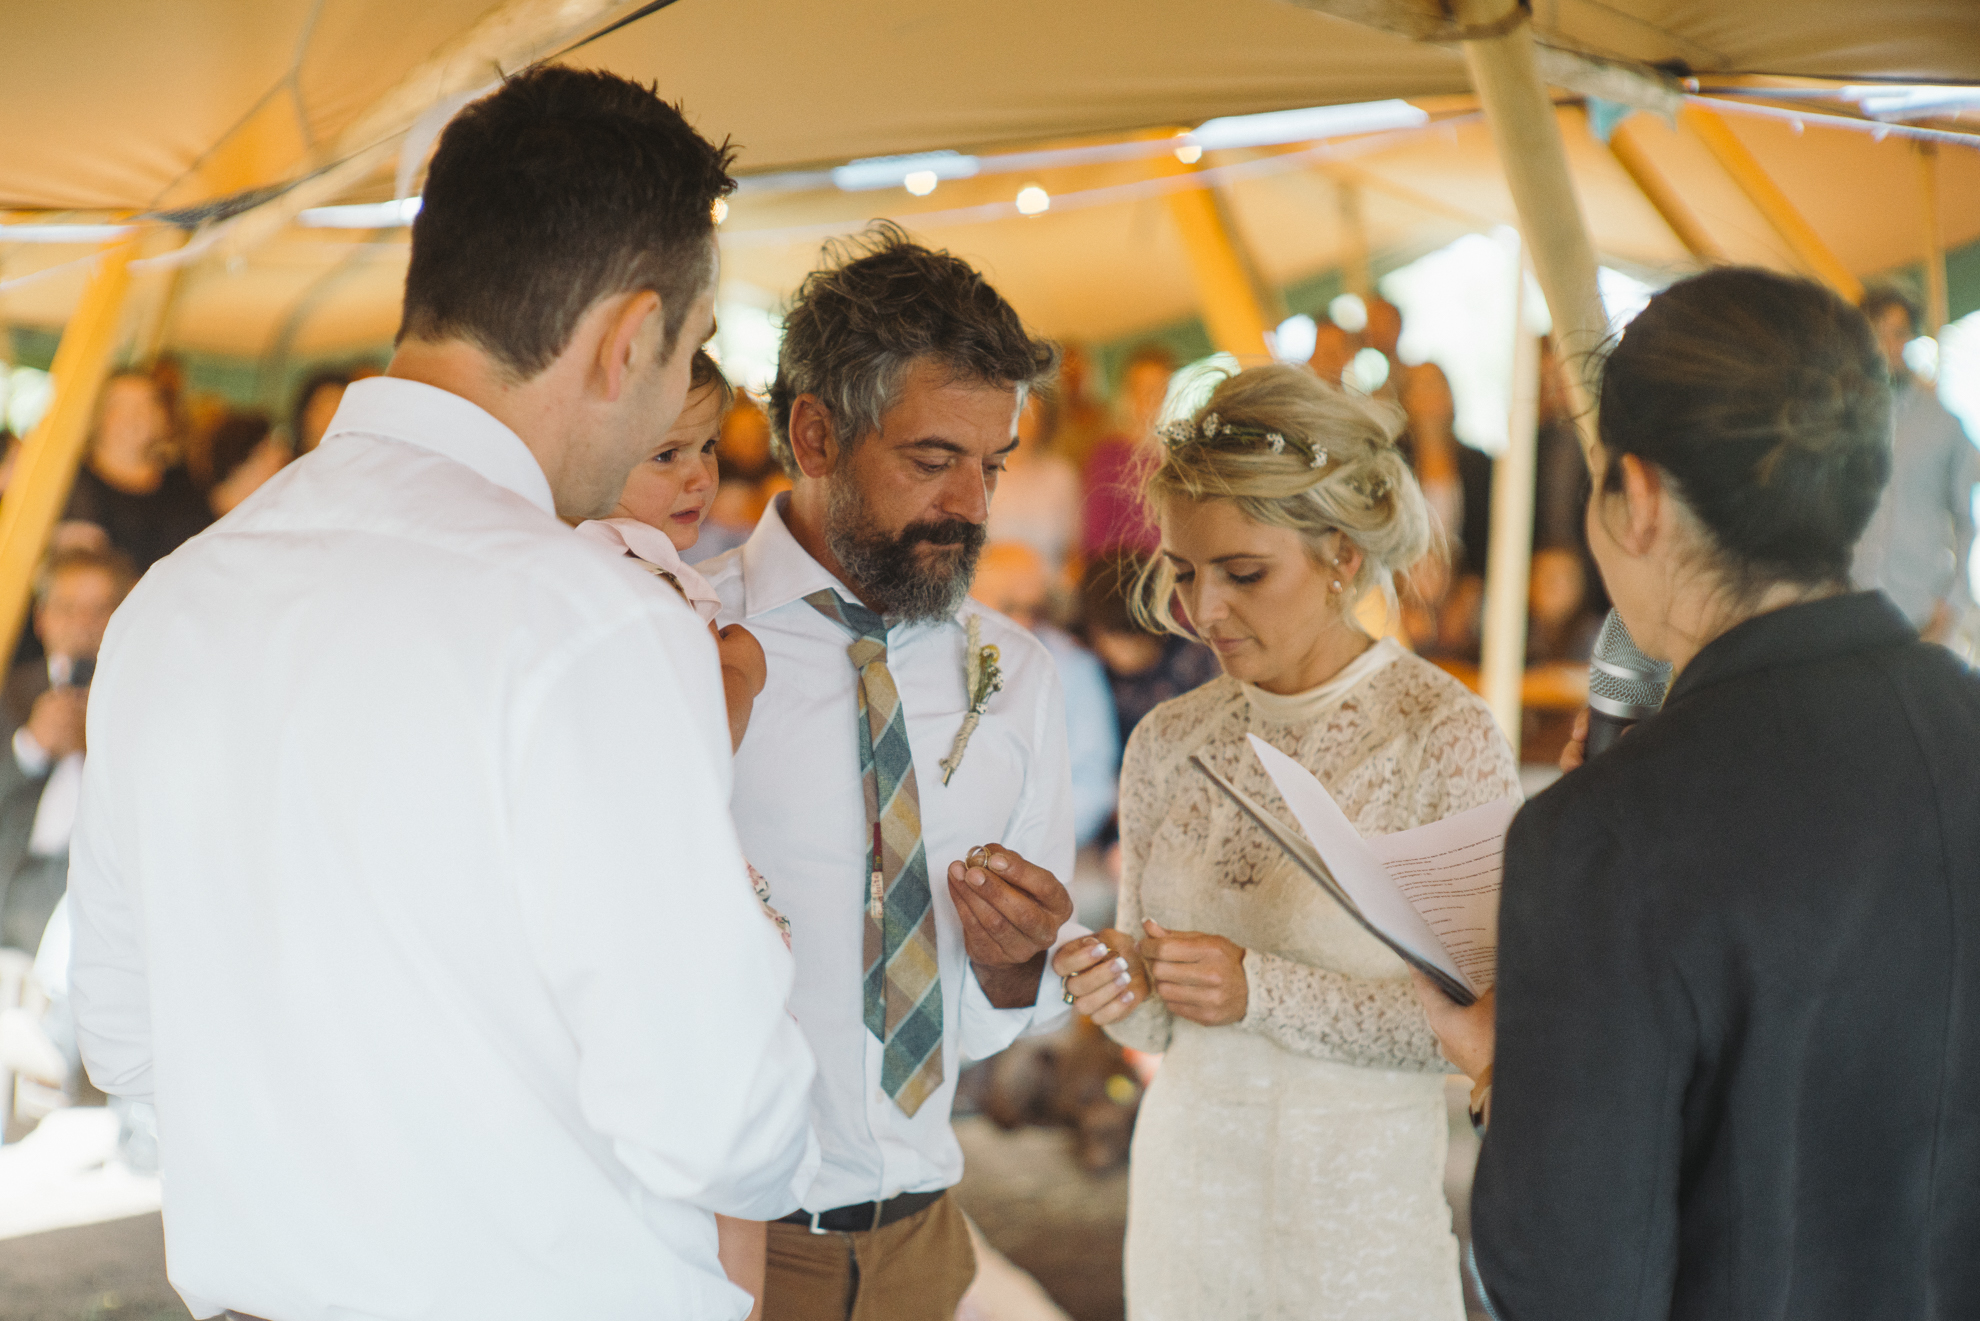 wedding_A&G_fabiooliveira-184.jpg